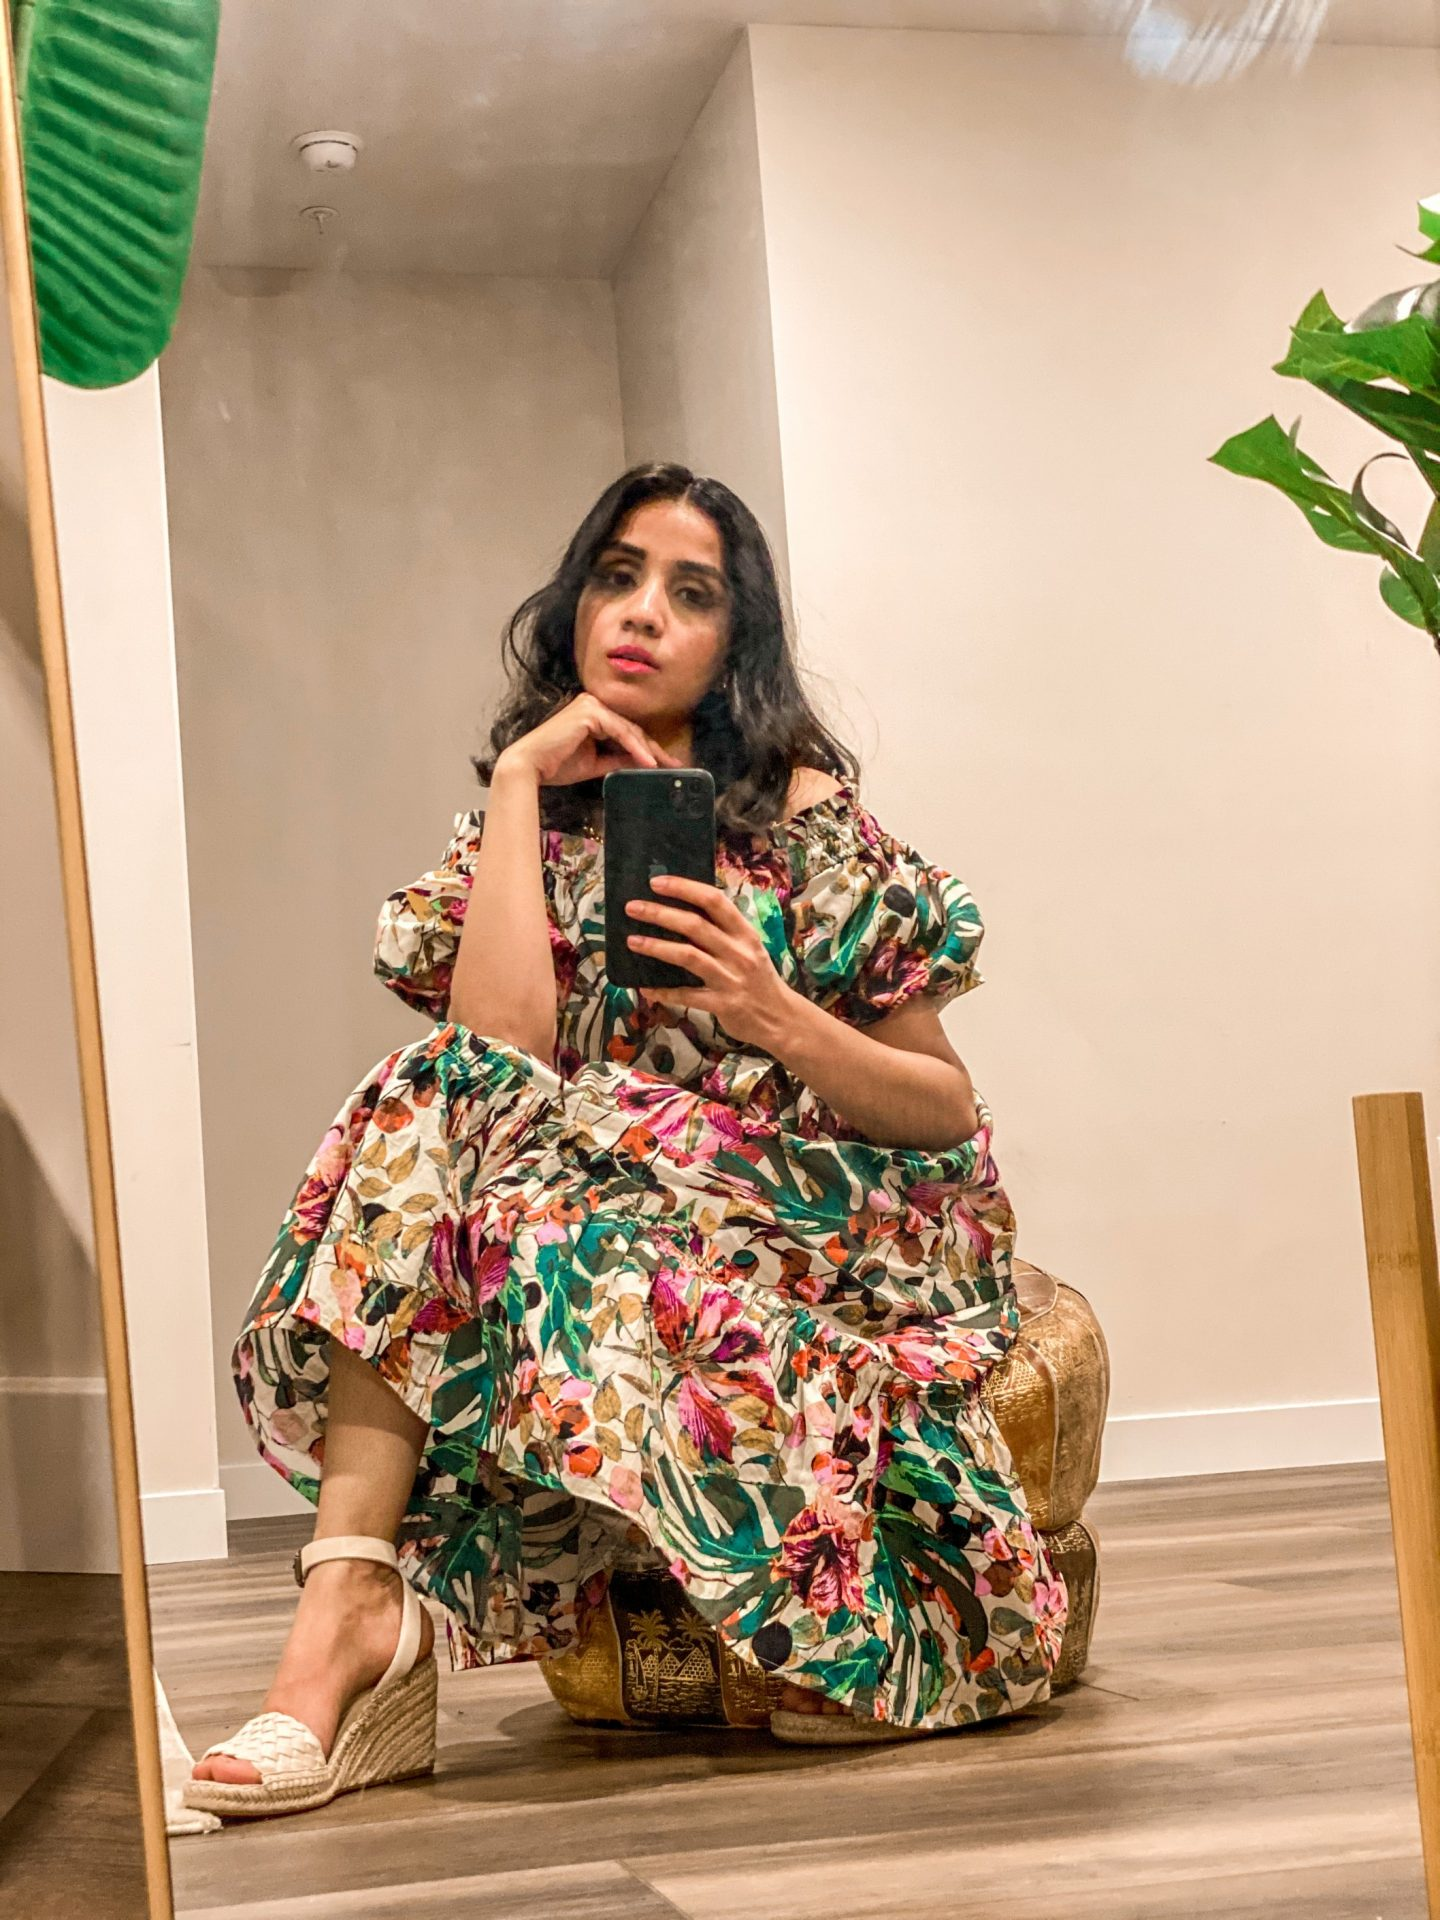 My Favorite Beauty Picks from Amazon in 2020 Faiza Inam sincerelyhumble amazon beauty favorites fragrance makeup skincare line best 5